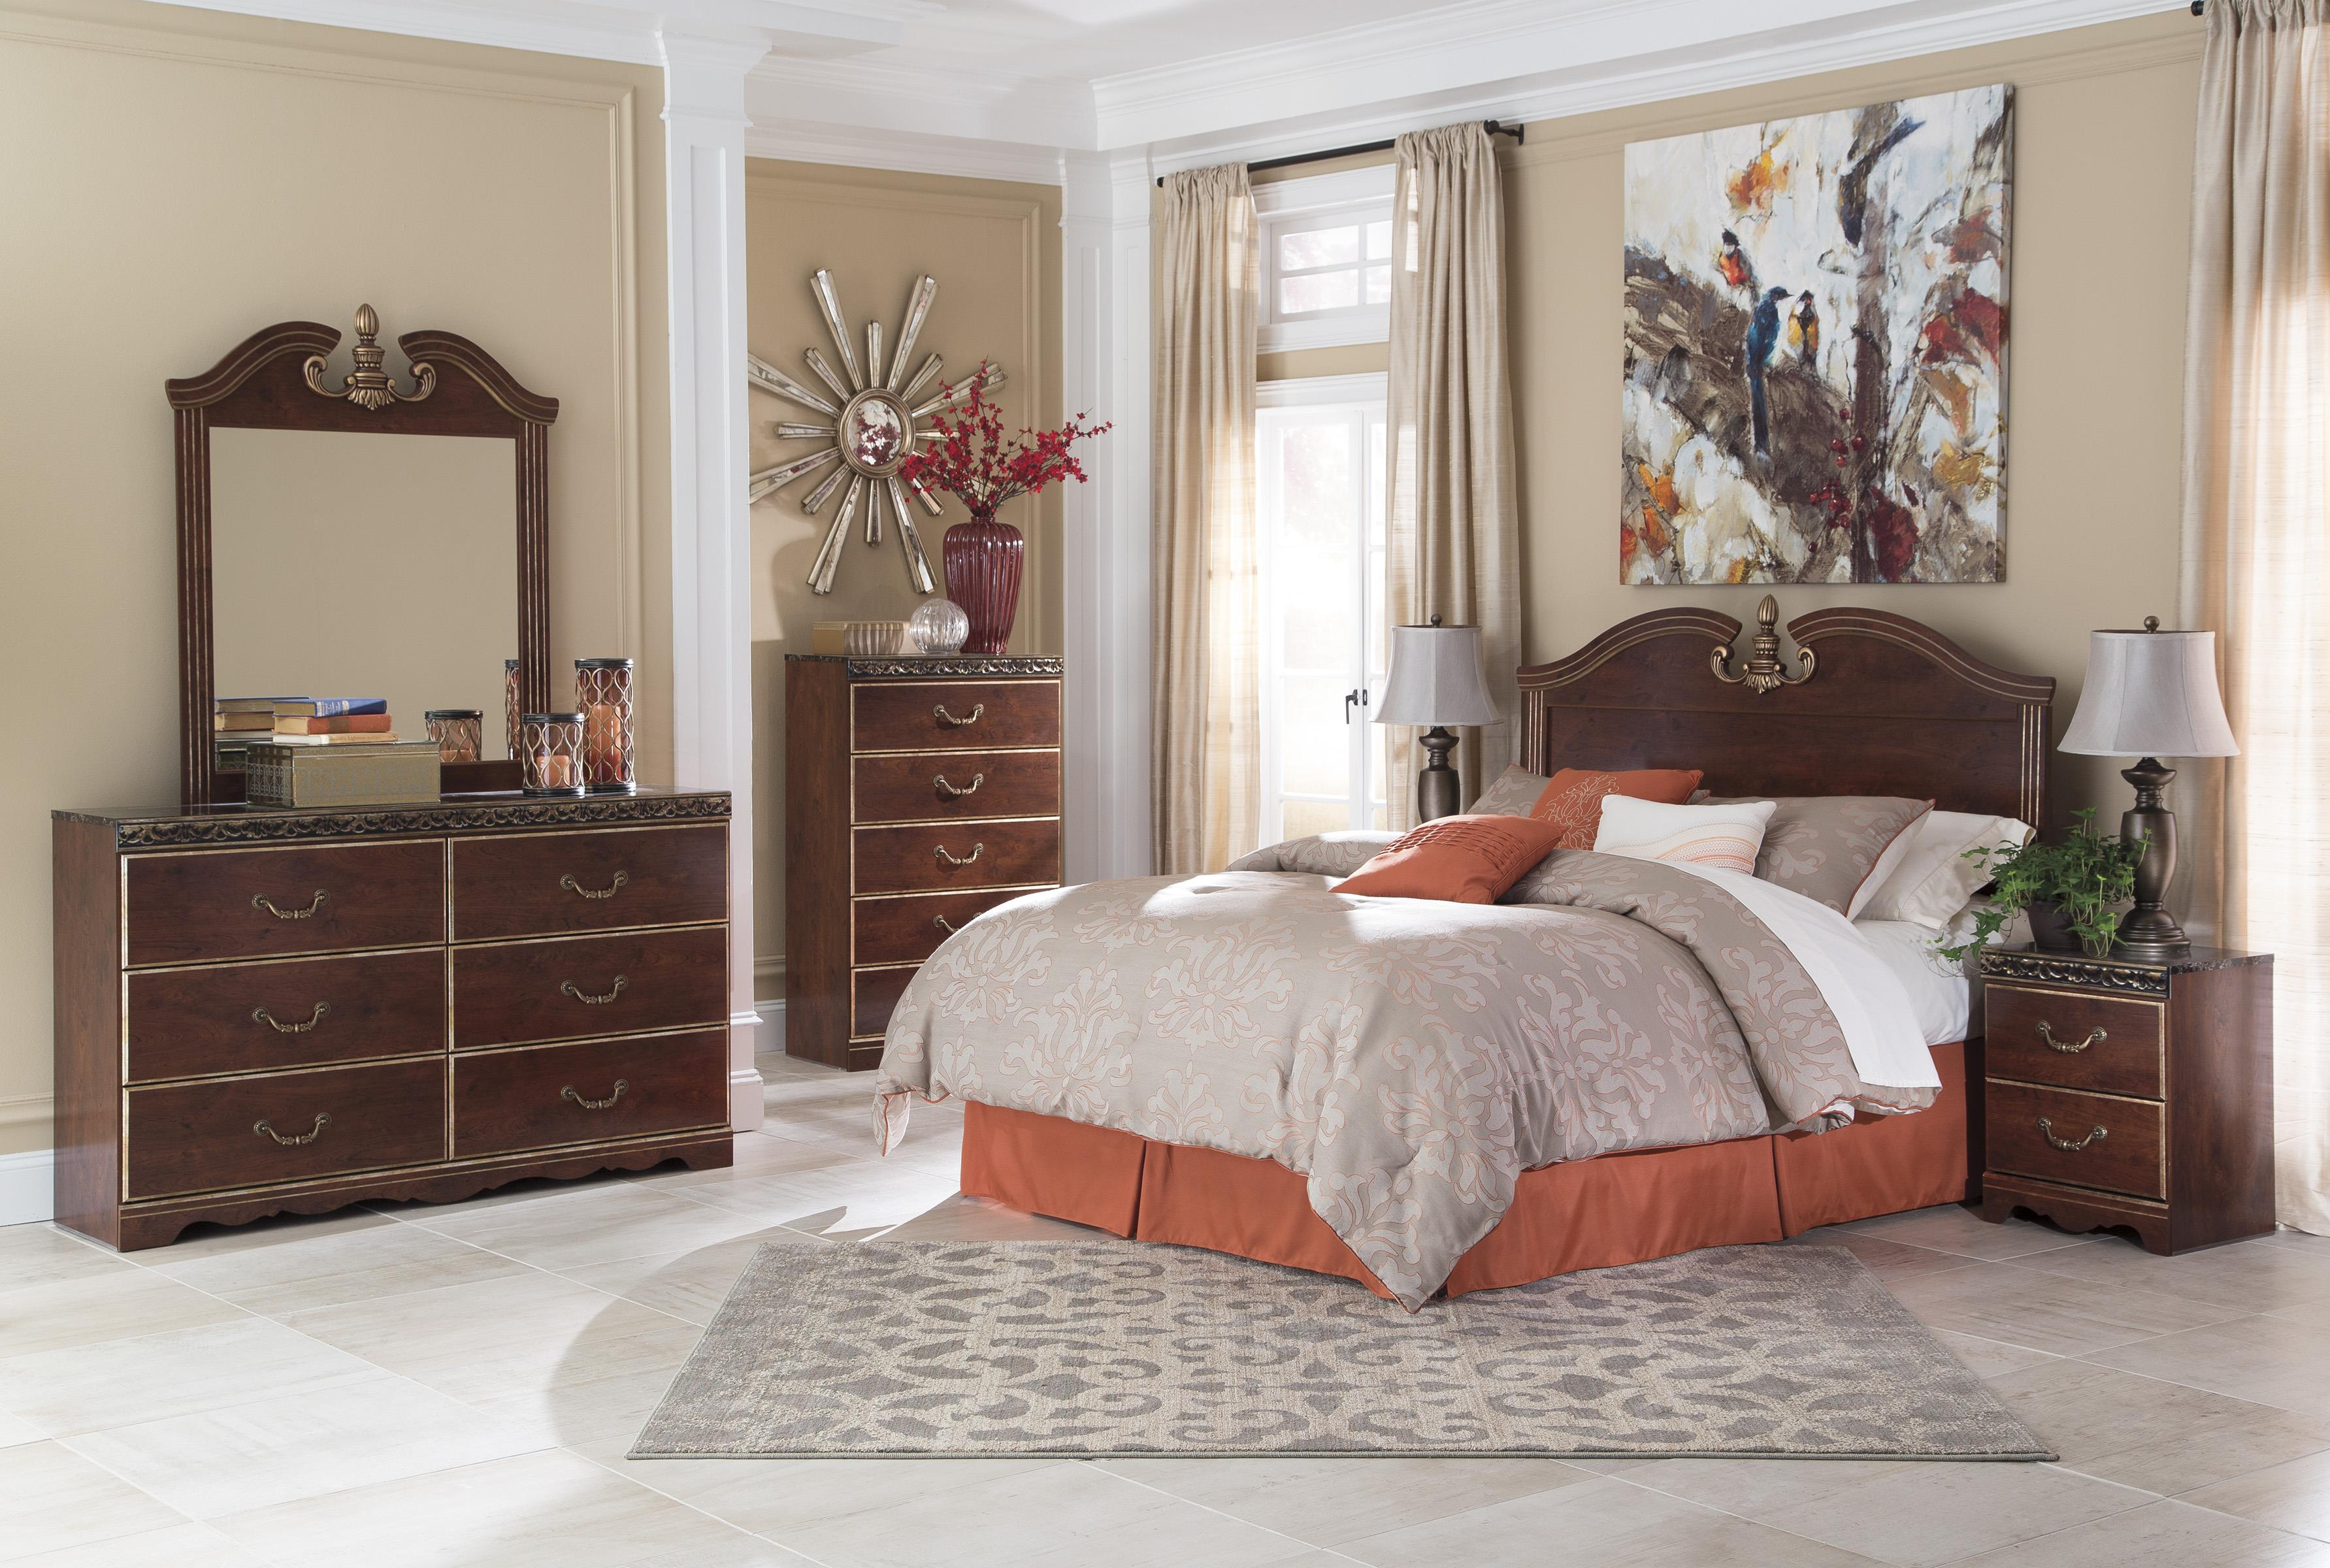 Signature Design by Ashley Naralyn Queen/Full Bedroom Group - Item Number: B164 Q Bedroom Group 2